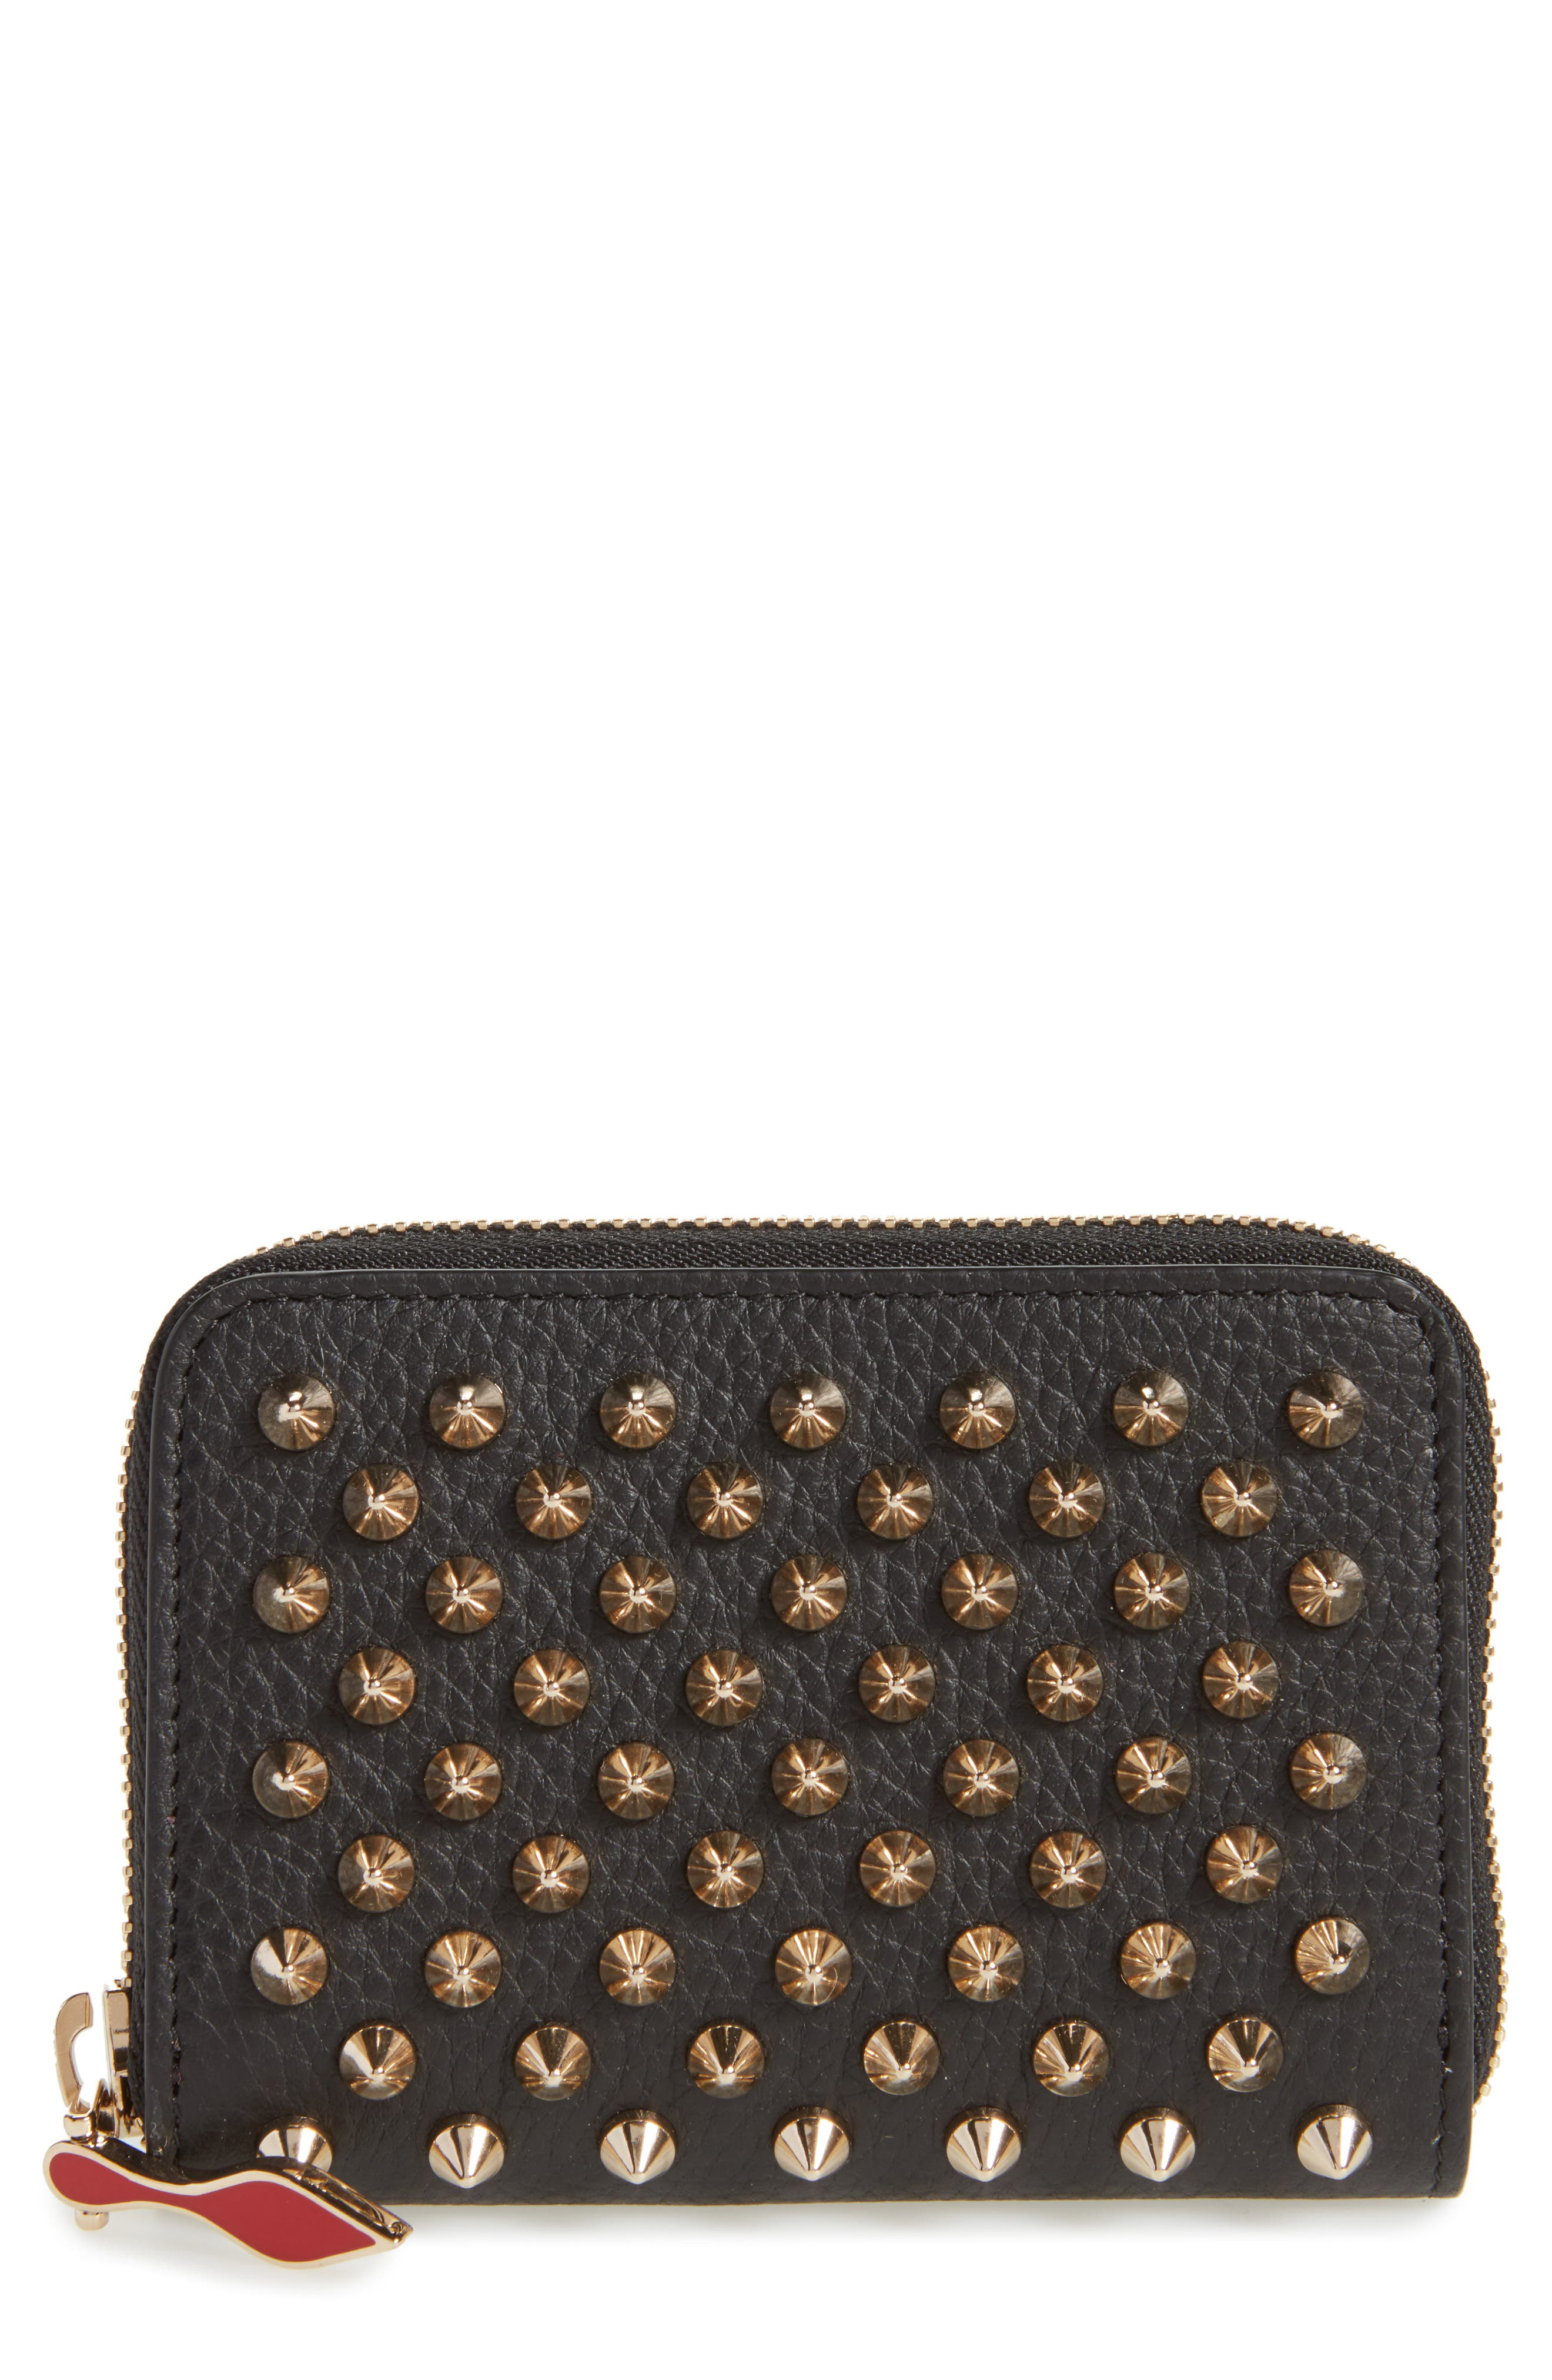 Panettone Leather Coin Purse,                             Main thumbnail 1, color,                             BLACK/ GOLD